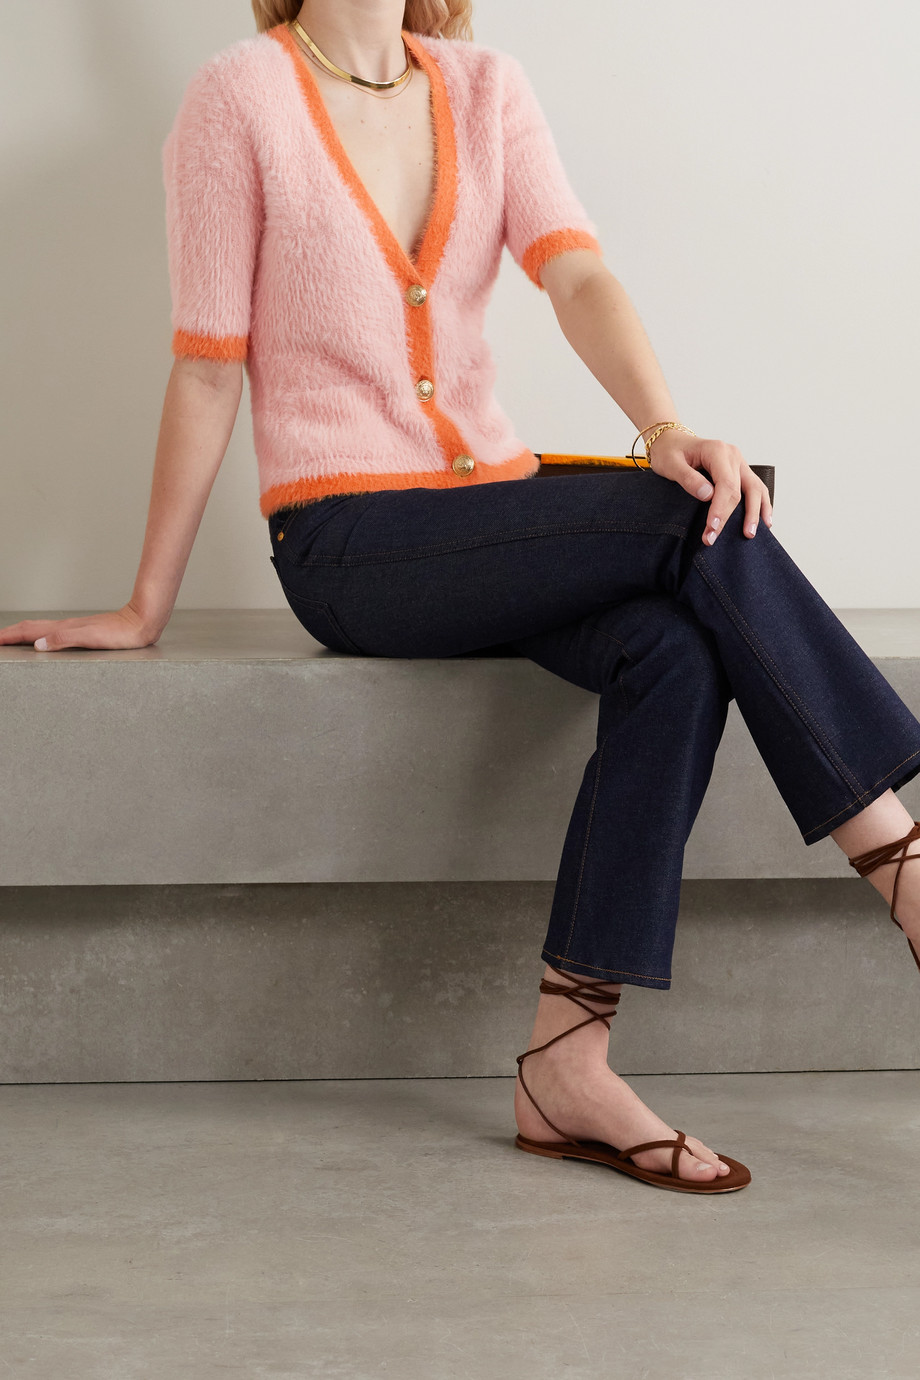 L'Agence Susie knitted cardigan